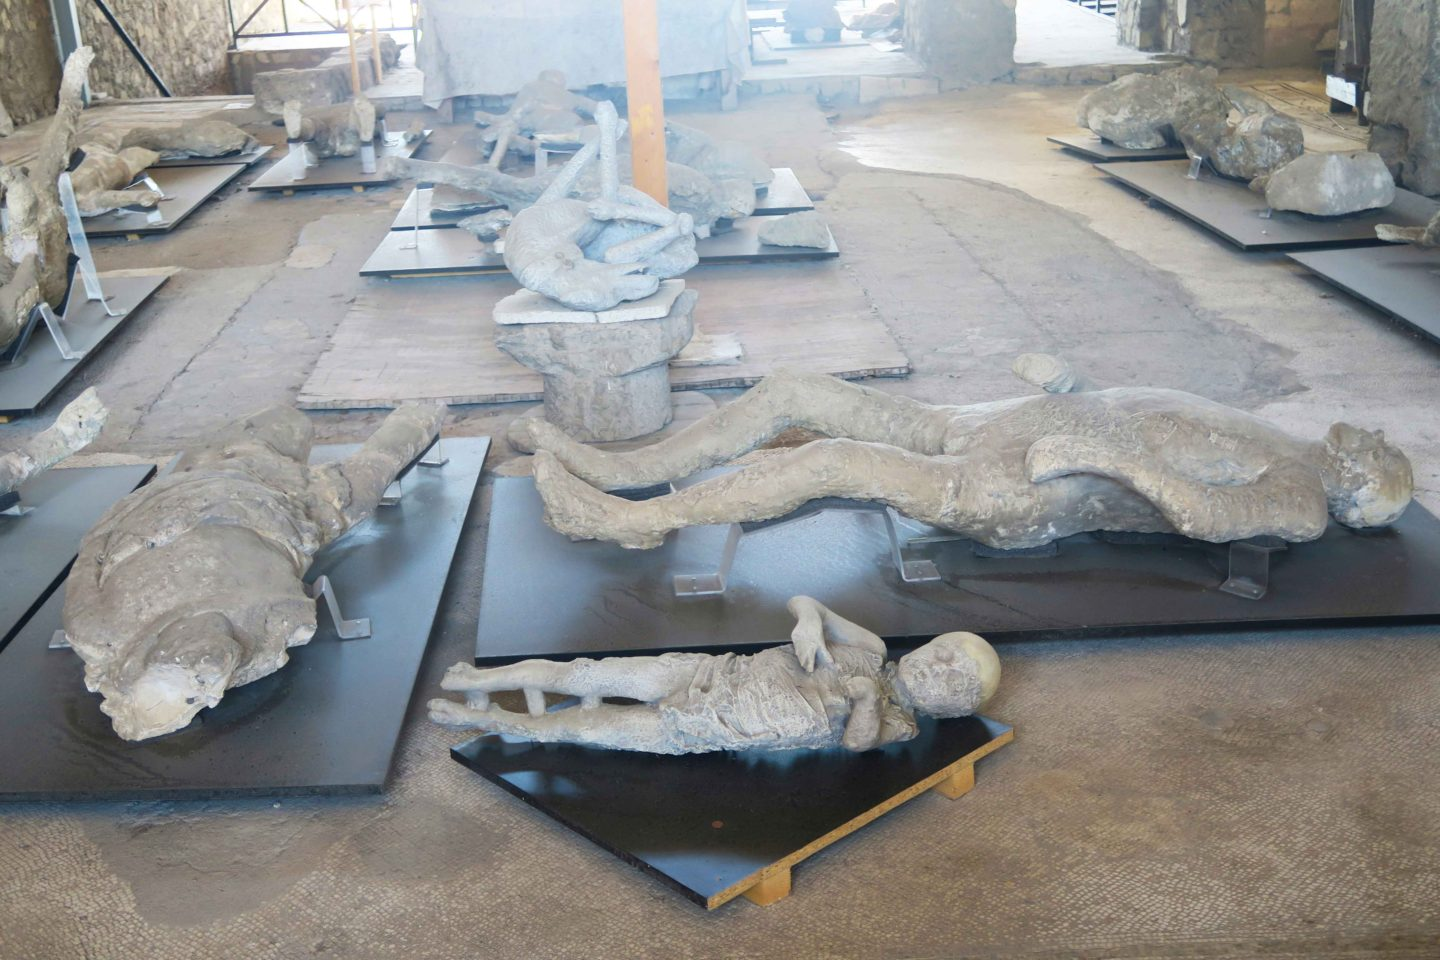 pompeii site with mummified bodies in naples